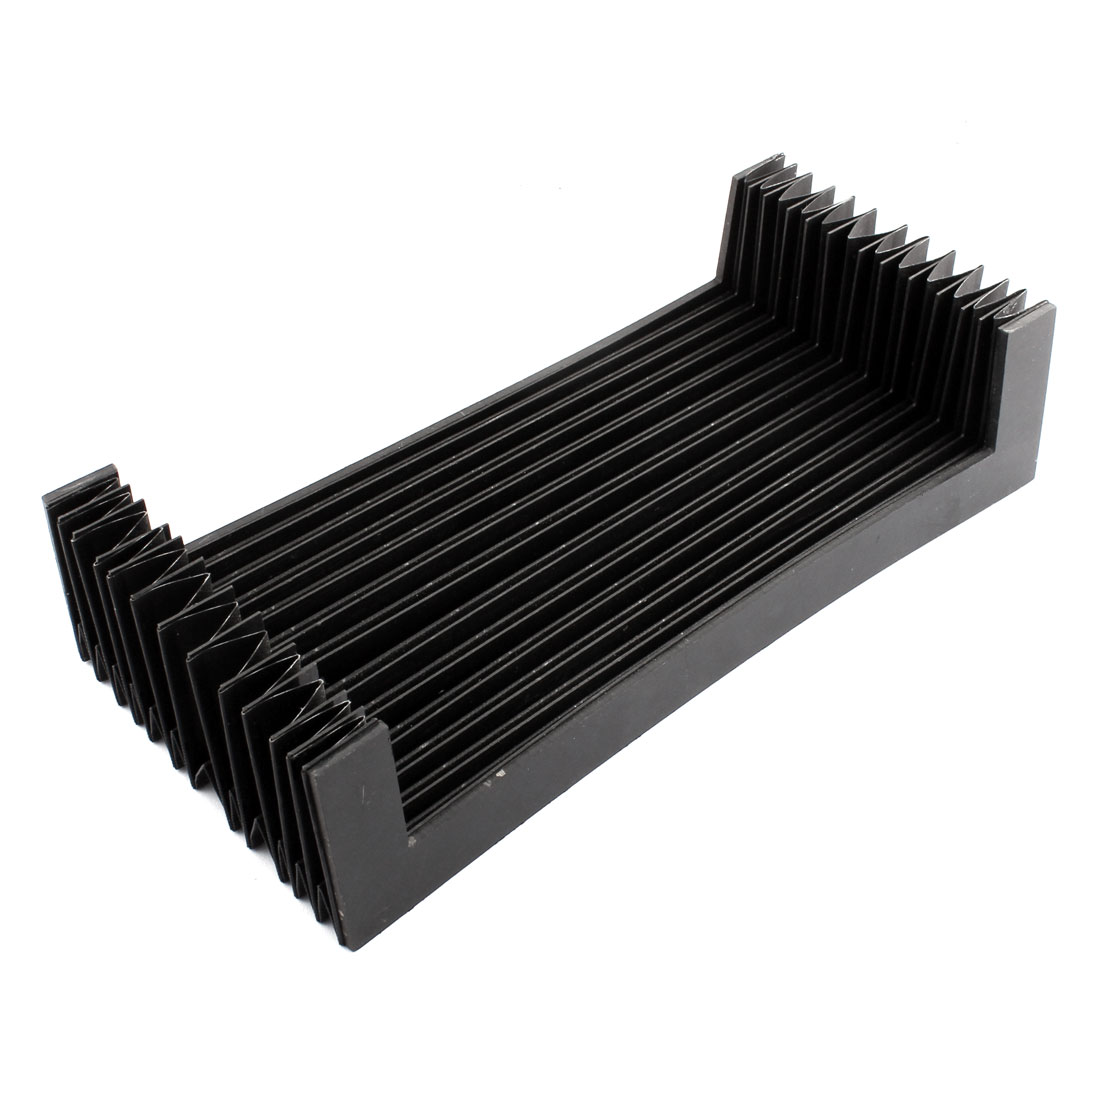 CNC Machine Fitting Flexible Foldable Accordion Shaped Dust Cover 32 x 25 x 6cm Black